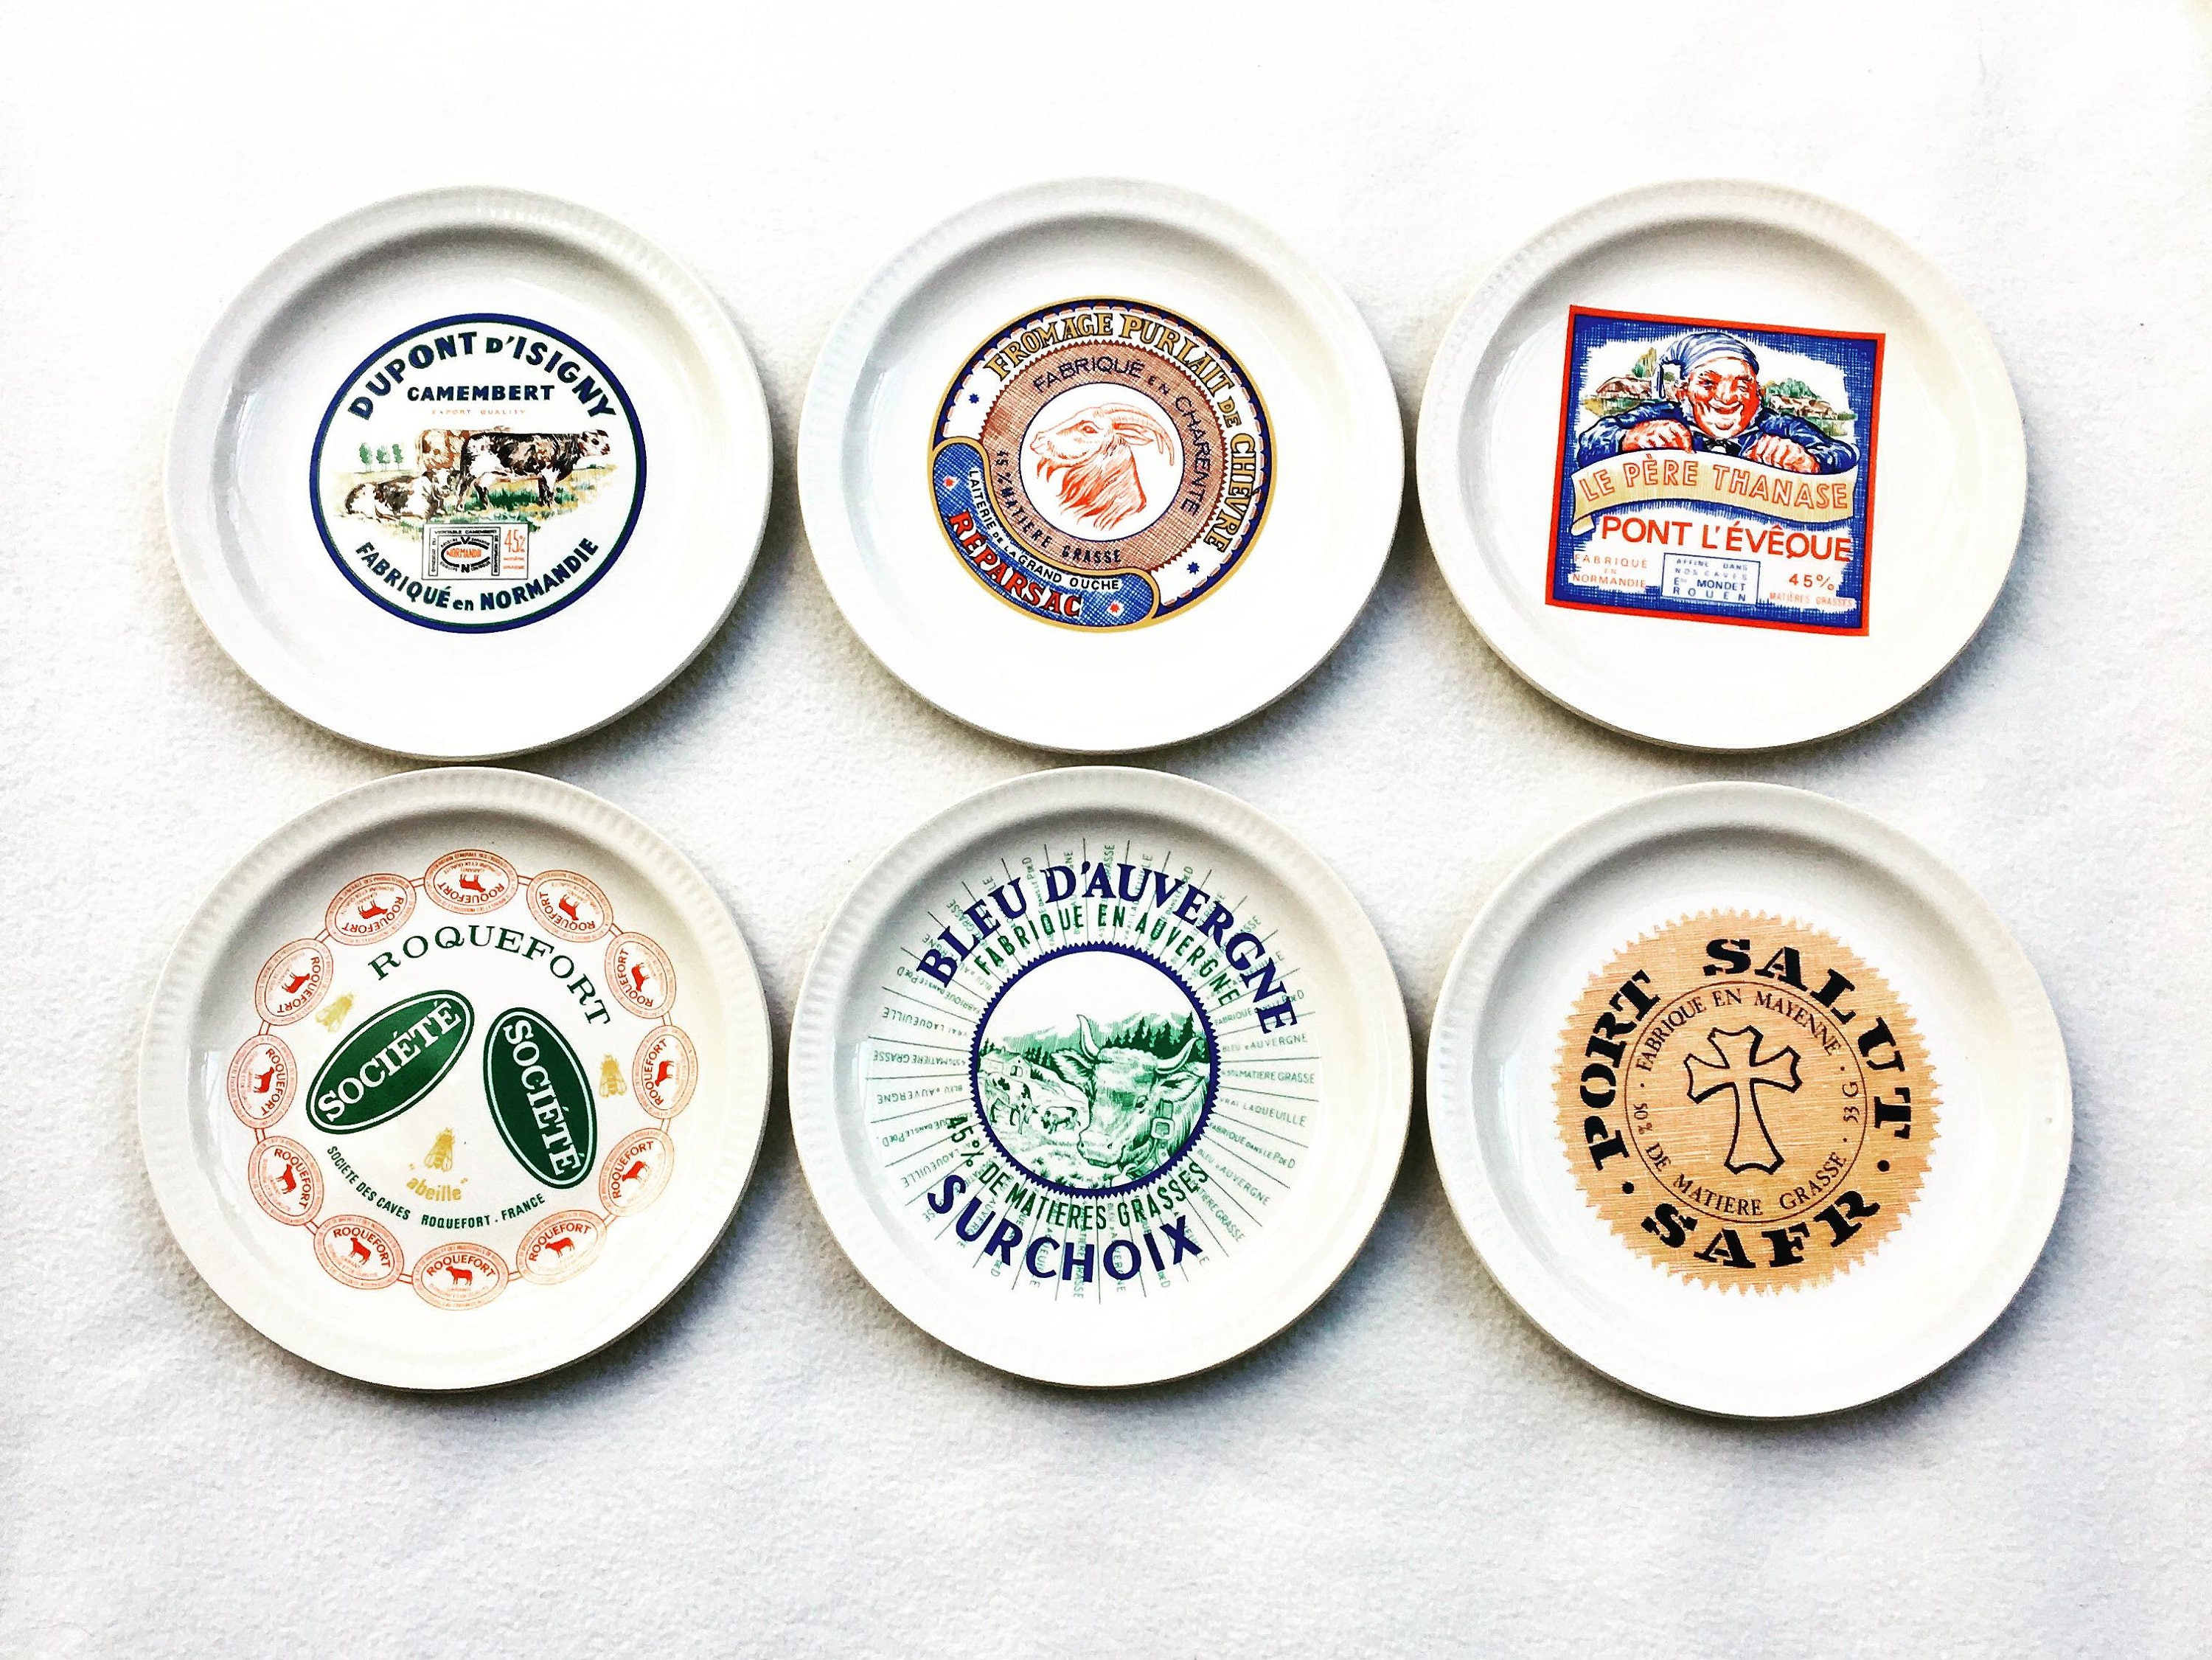 French Cheese Plates France Advertising of the Brands 6 Plates Saint-Amand 1950s Vintage French cheese plates Gift for Him Gift for Her  sc 1 st  VintagechicBruxelles & French Cheese Plates France Advertising of the Brands 6 Plates Saint ...